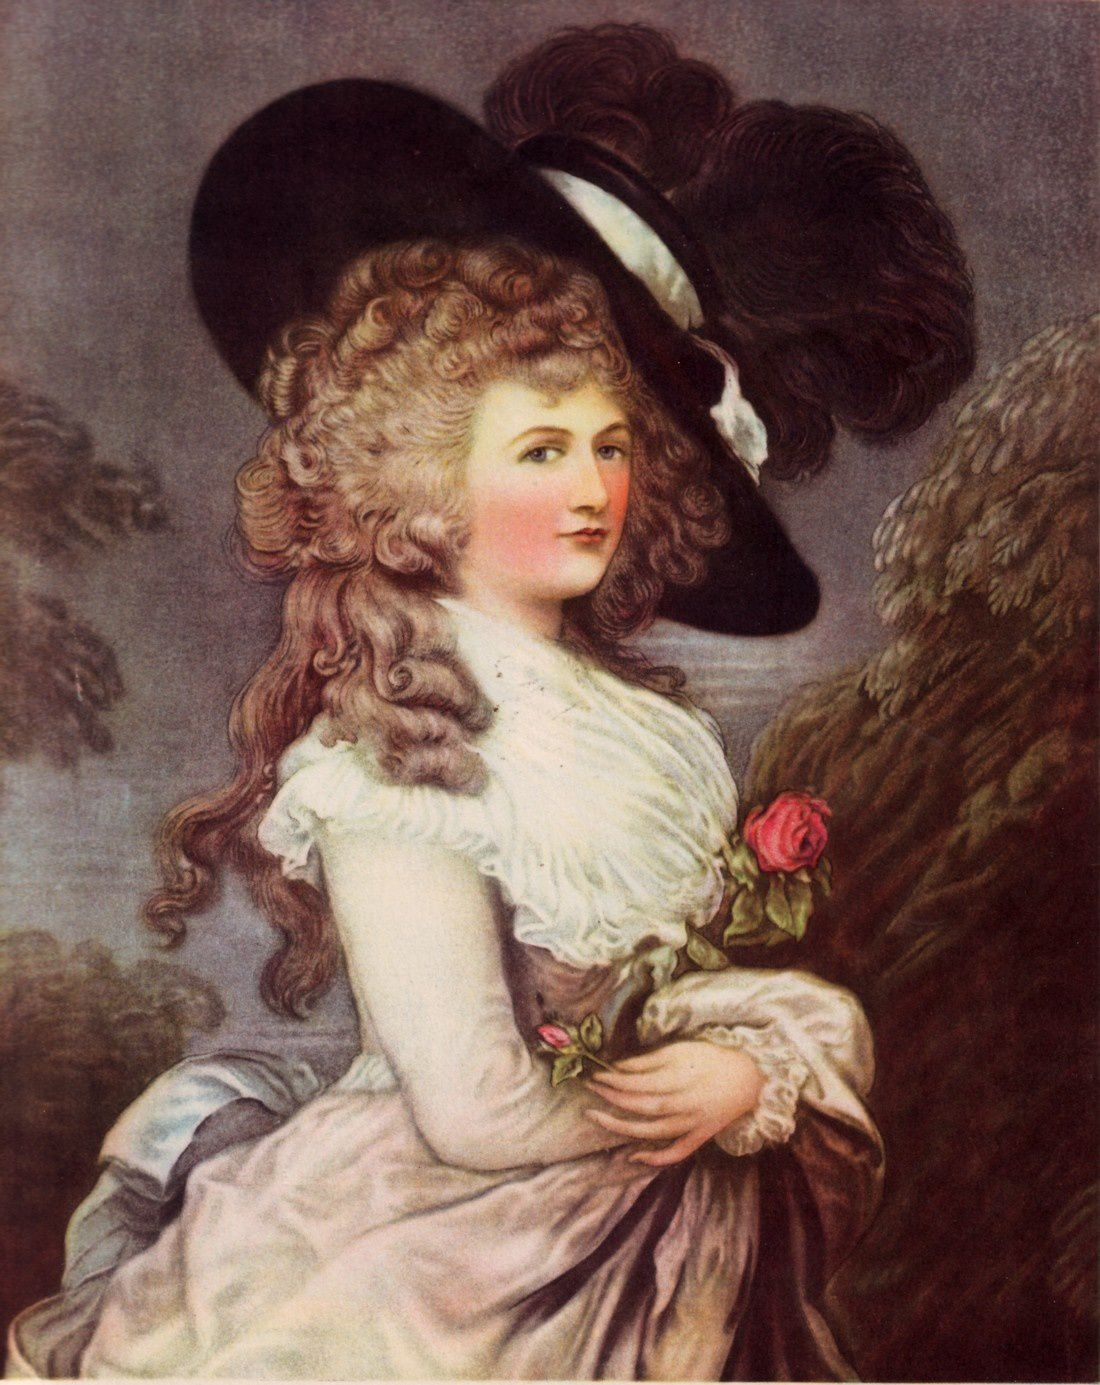 Georgiana Cavendish, née Spencer